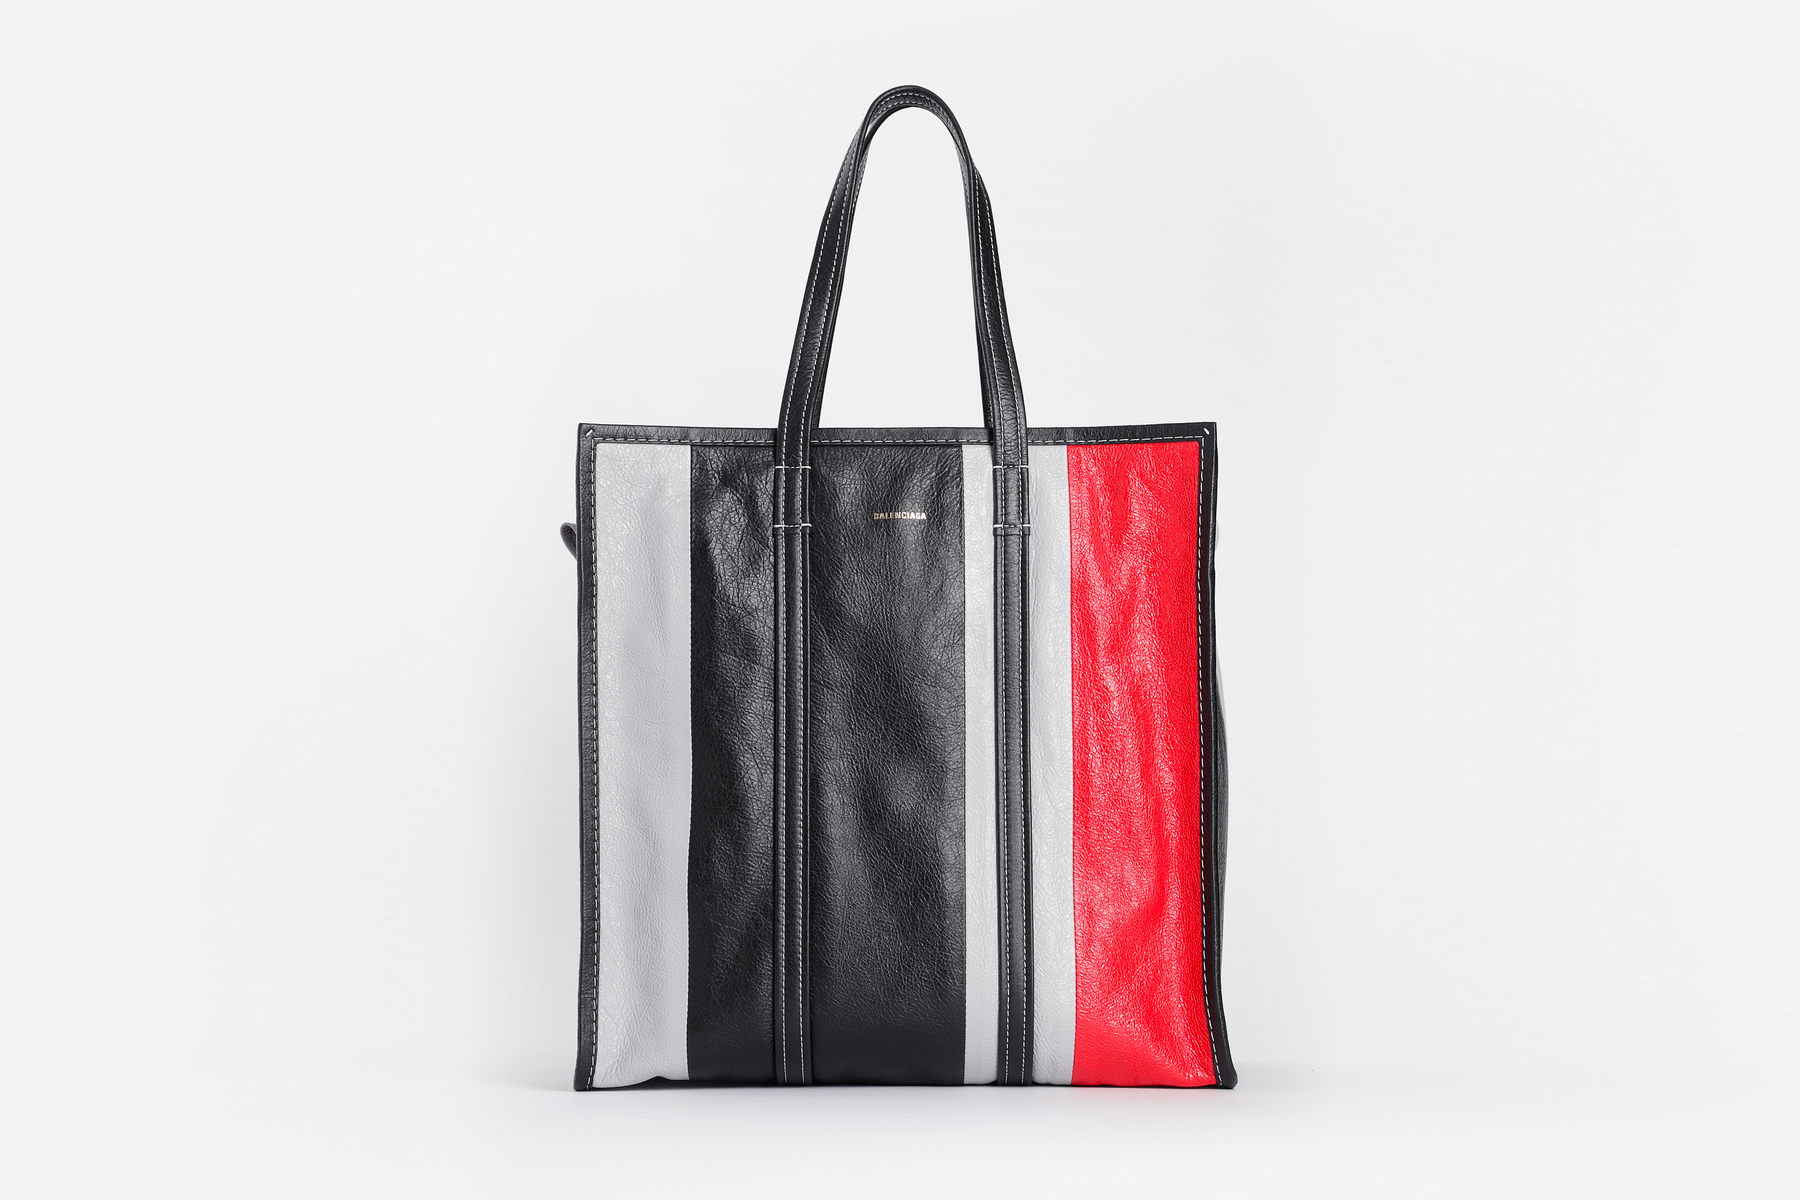 Balenciaga Fall Winter 2018 collection Leather Tote Bags accessories release info black grey yellow red